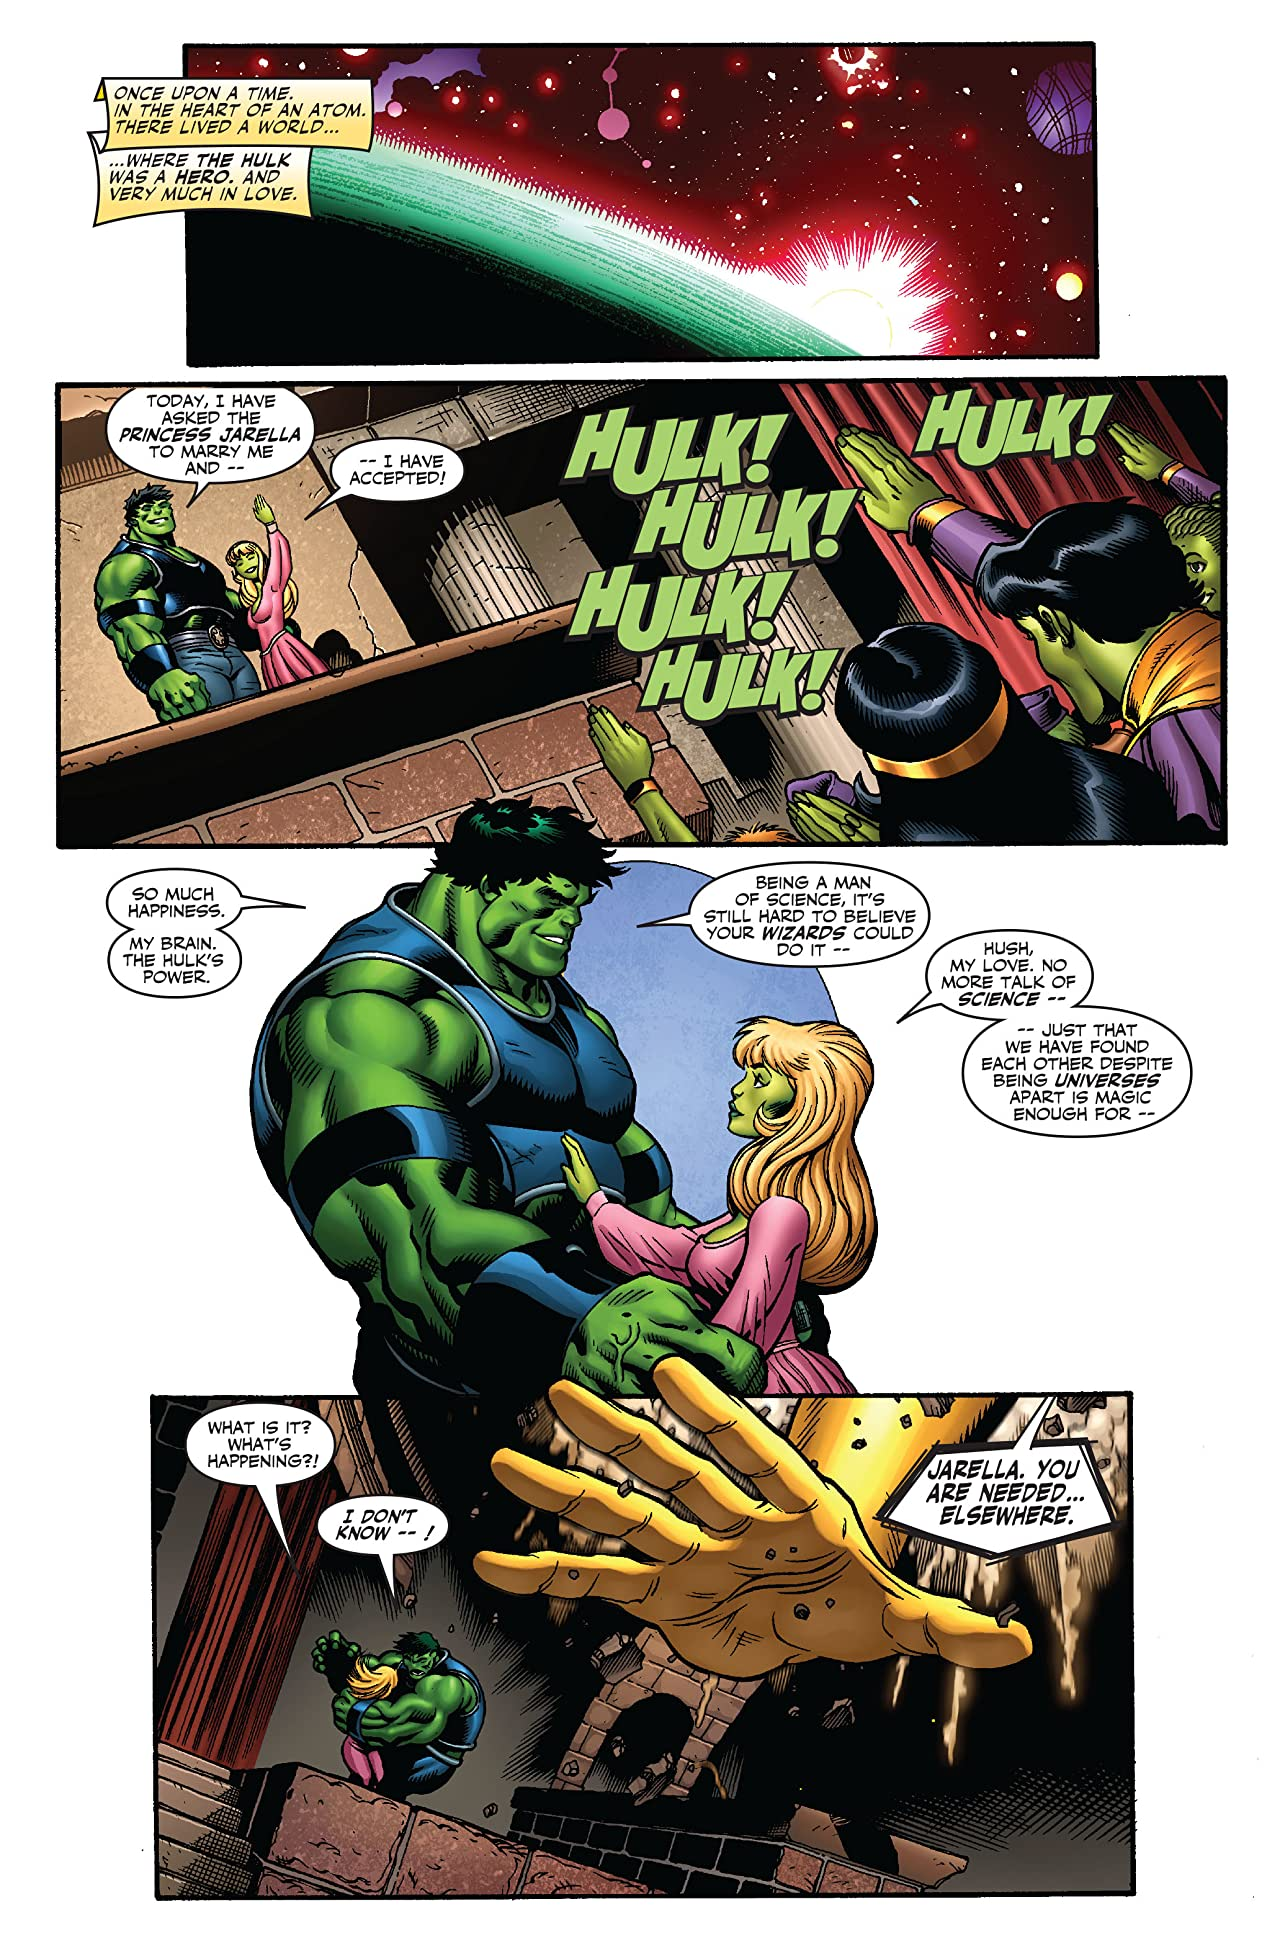 Hulk Vol. 3: Hulk No More